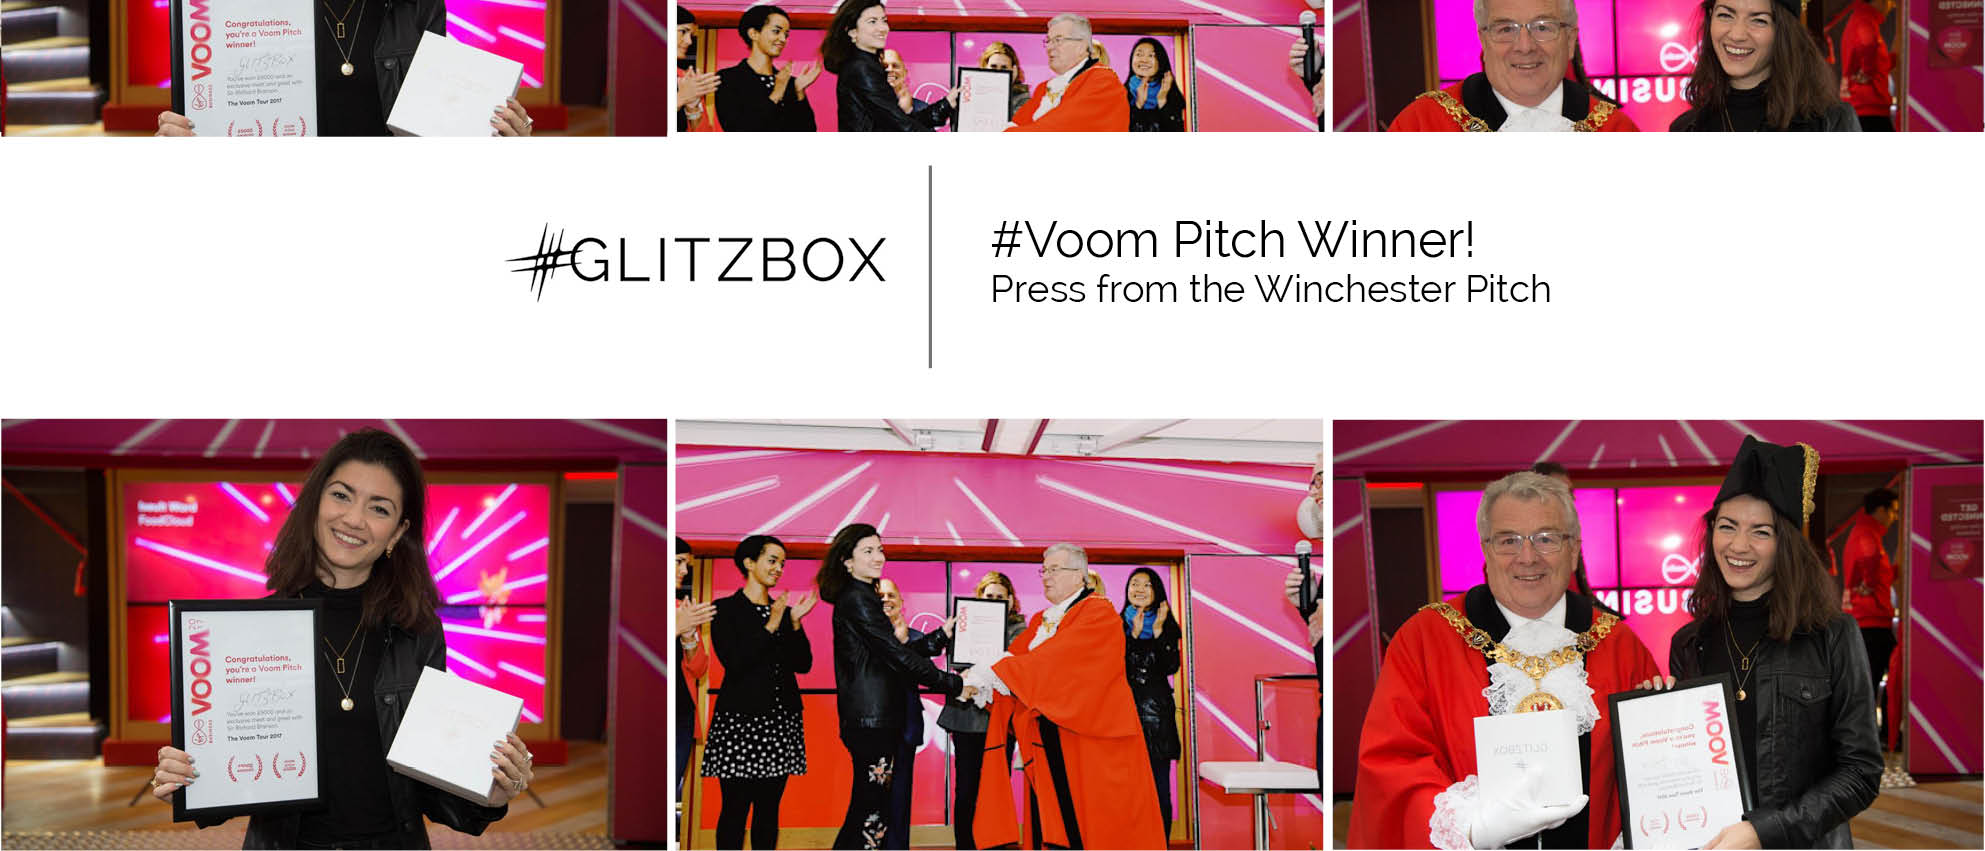 #Voom Pitch Winners!